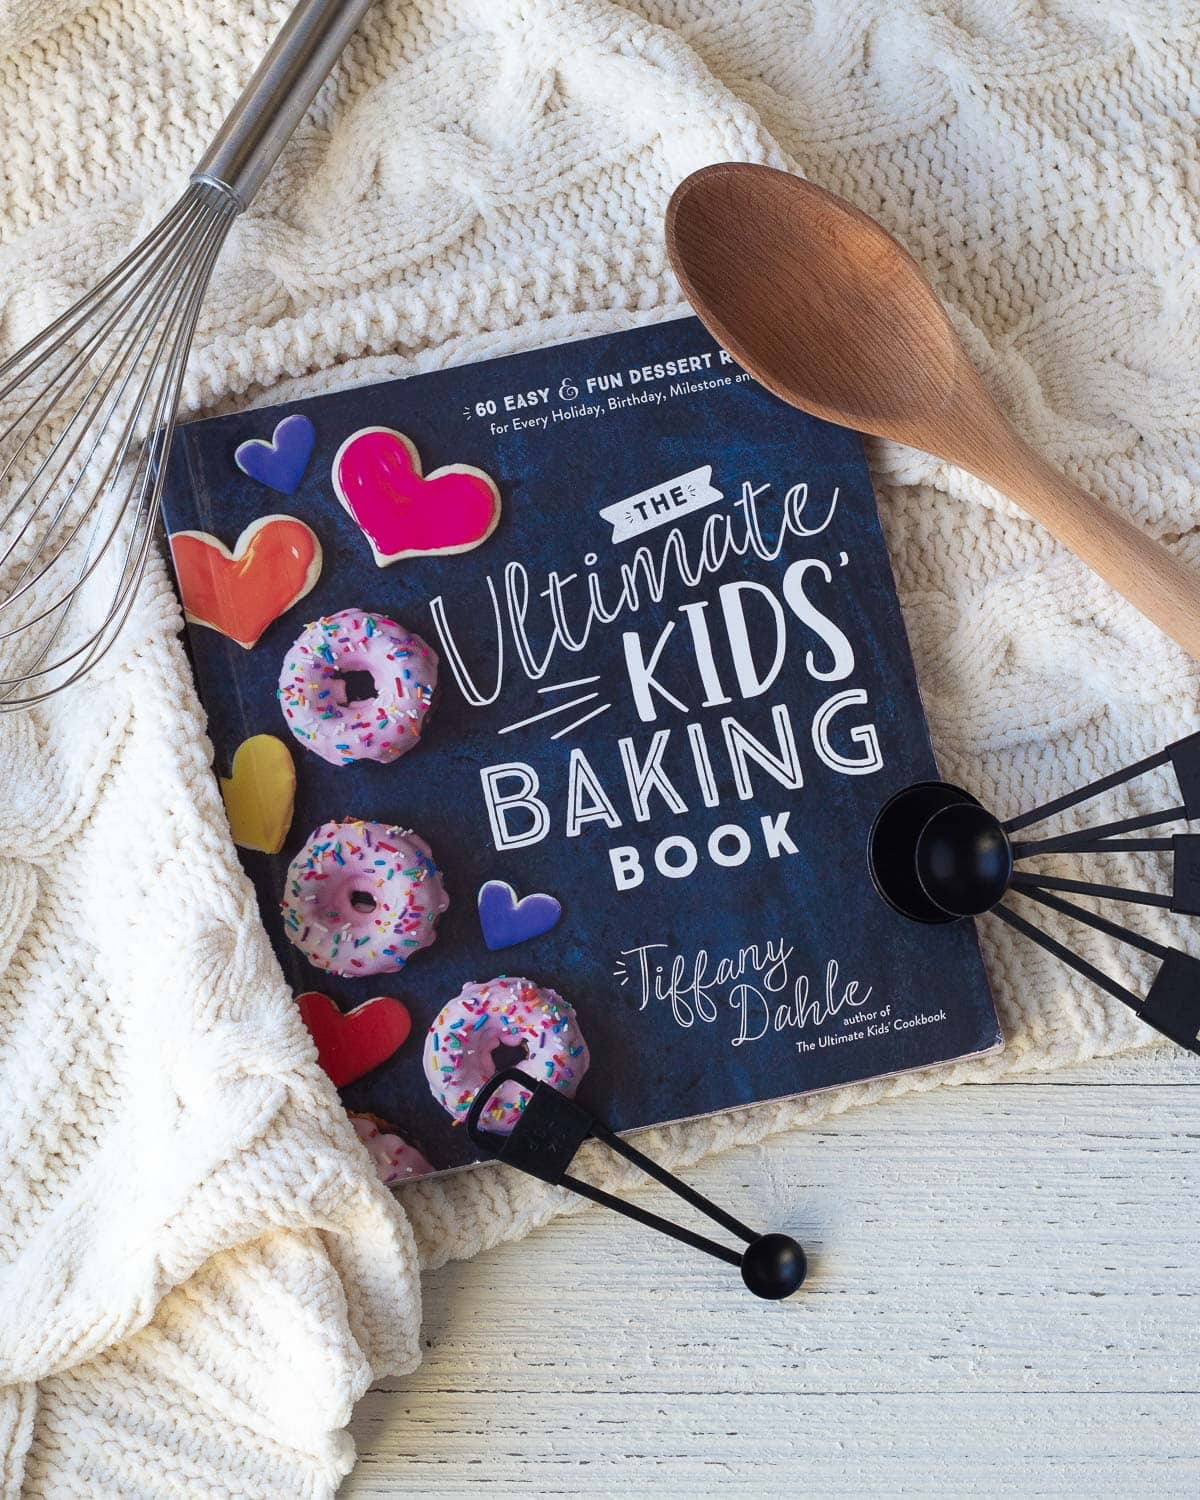 A baking book for kids surrounded by teaspoons and a wooden spoon.